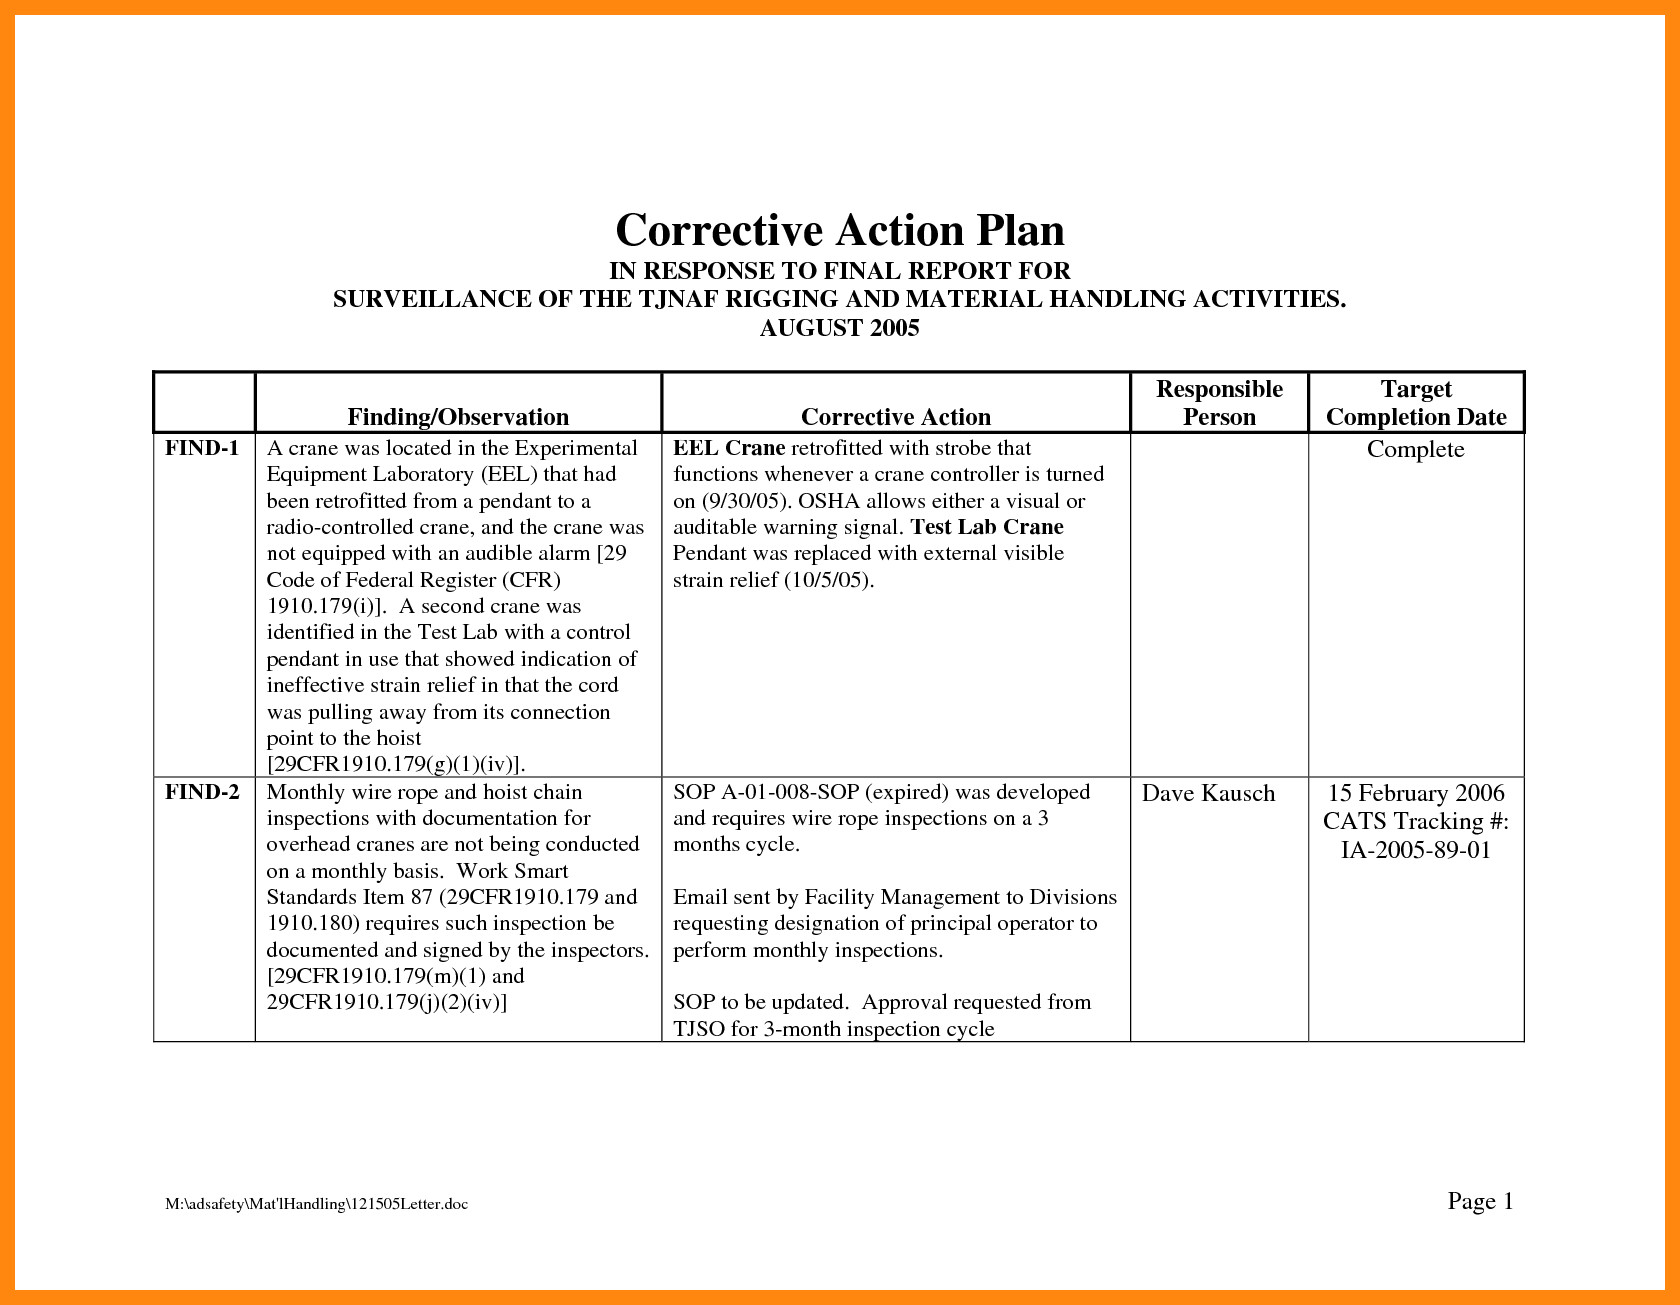 Corrective Action Plan Template Corrective Action Plan